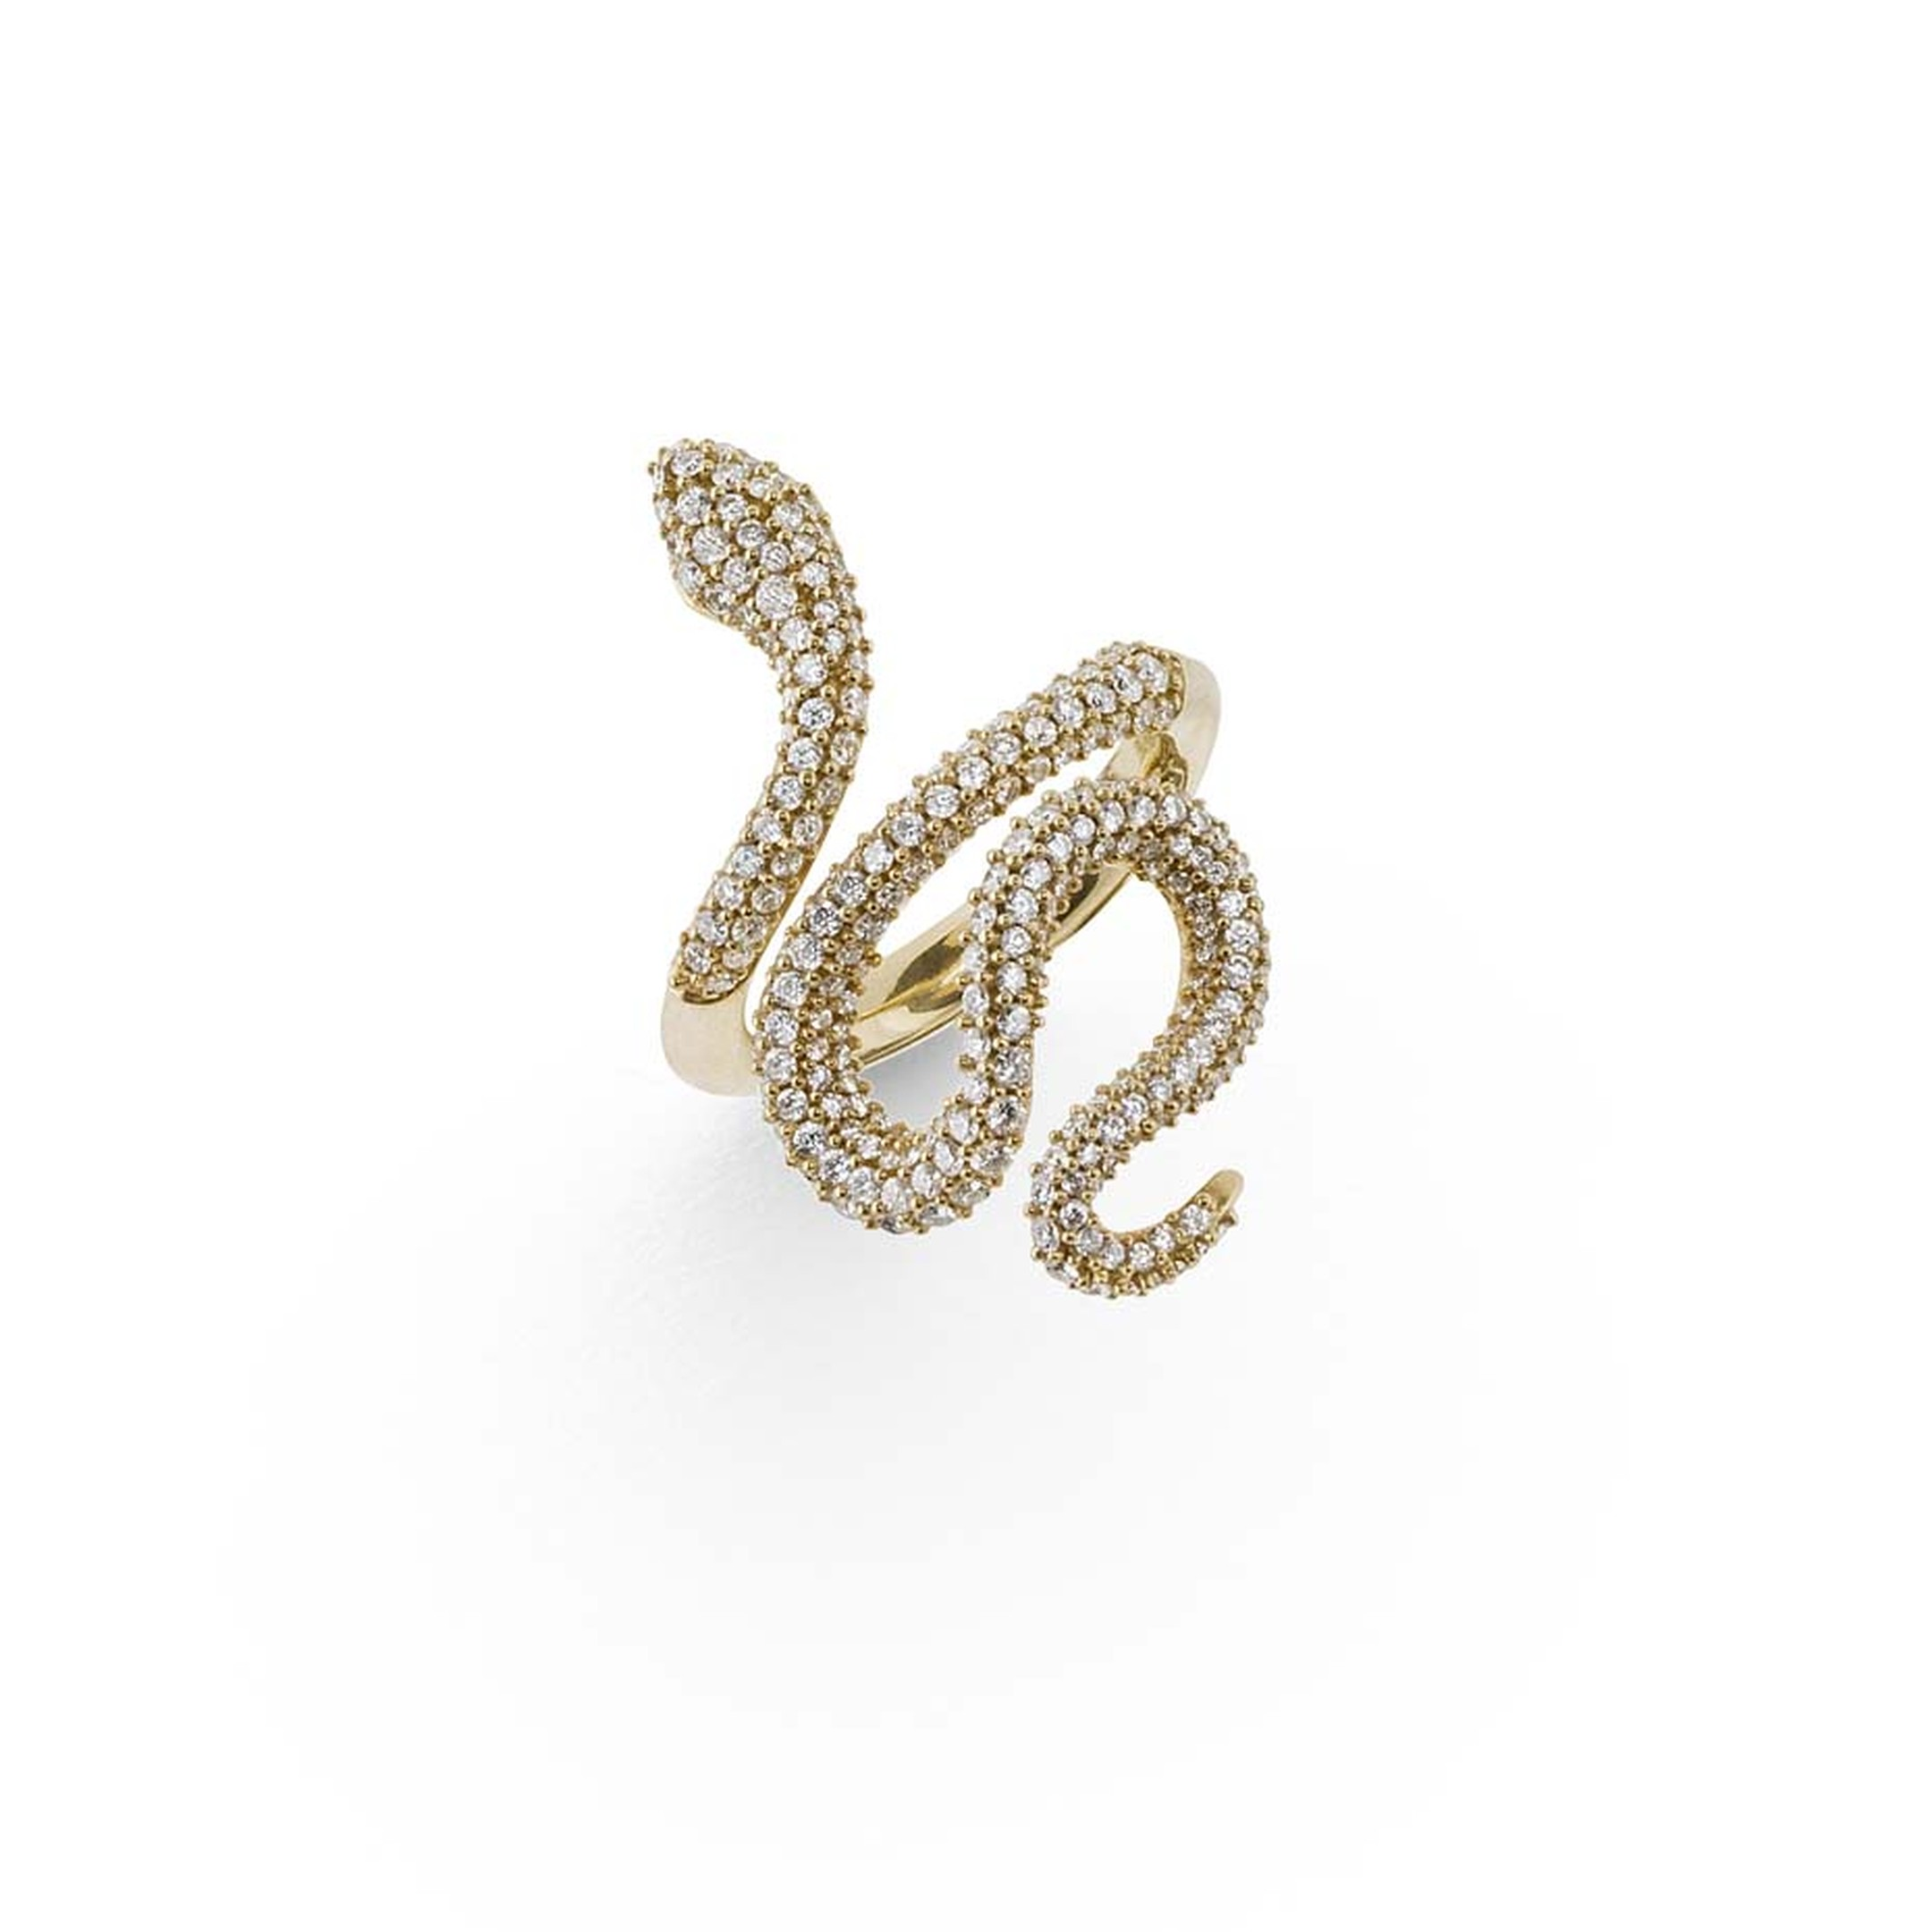 Ole Lynggaard high jewellery snake ring in 18ct yellow gold with pavé diamonds.